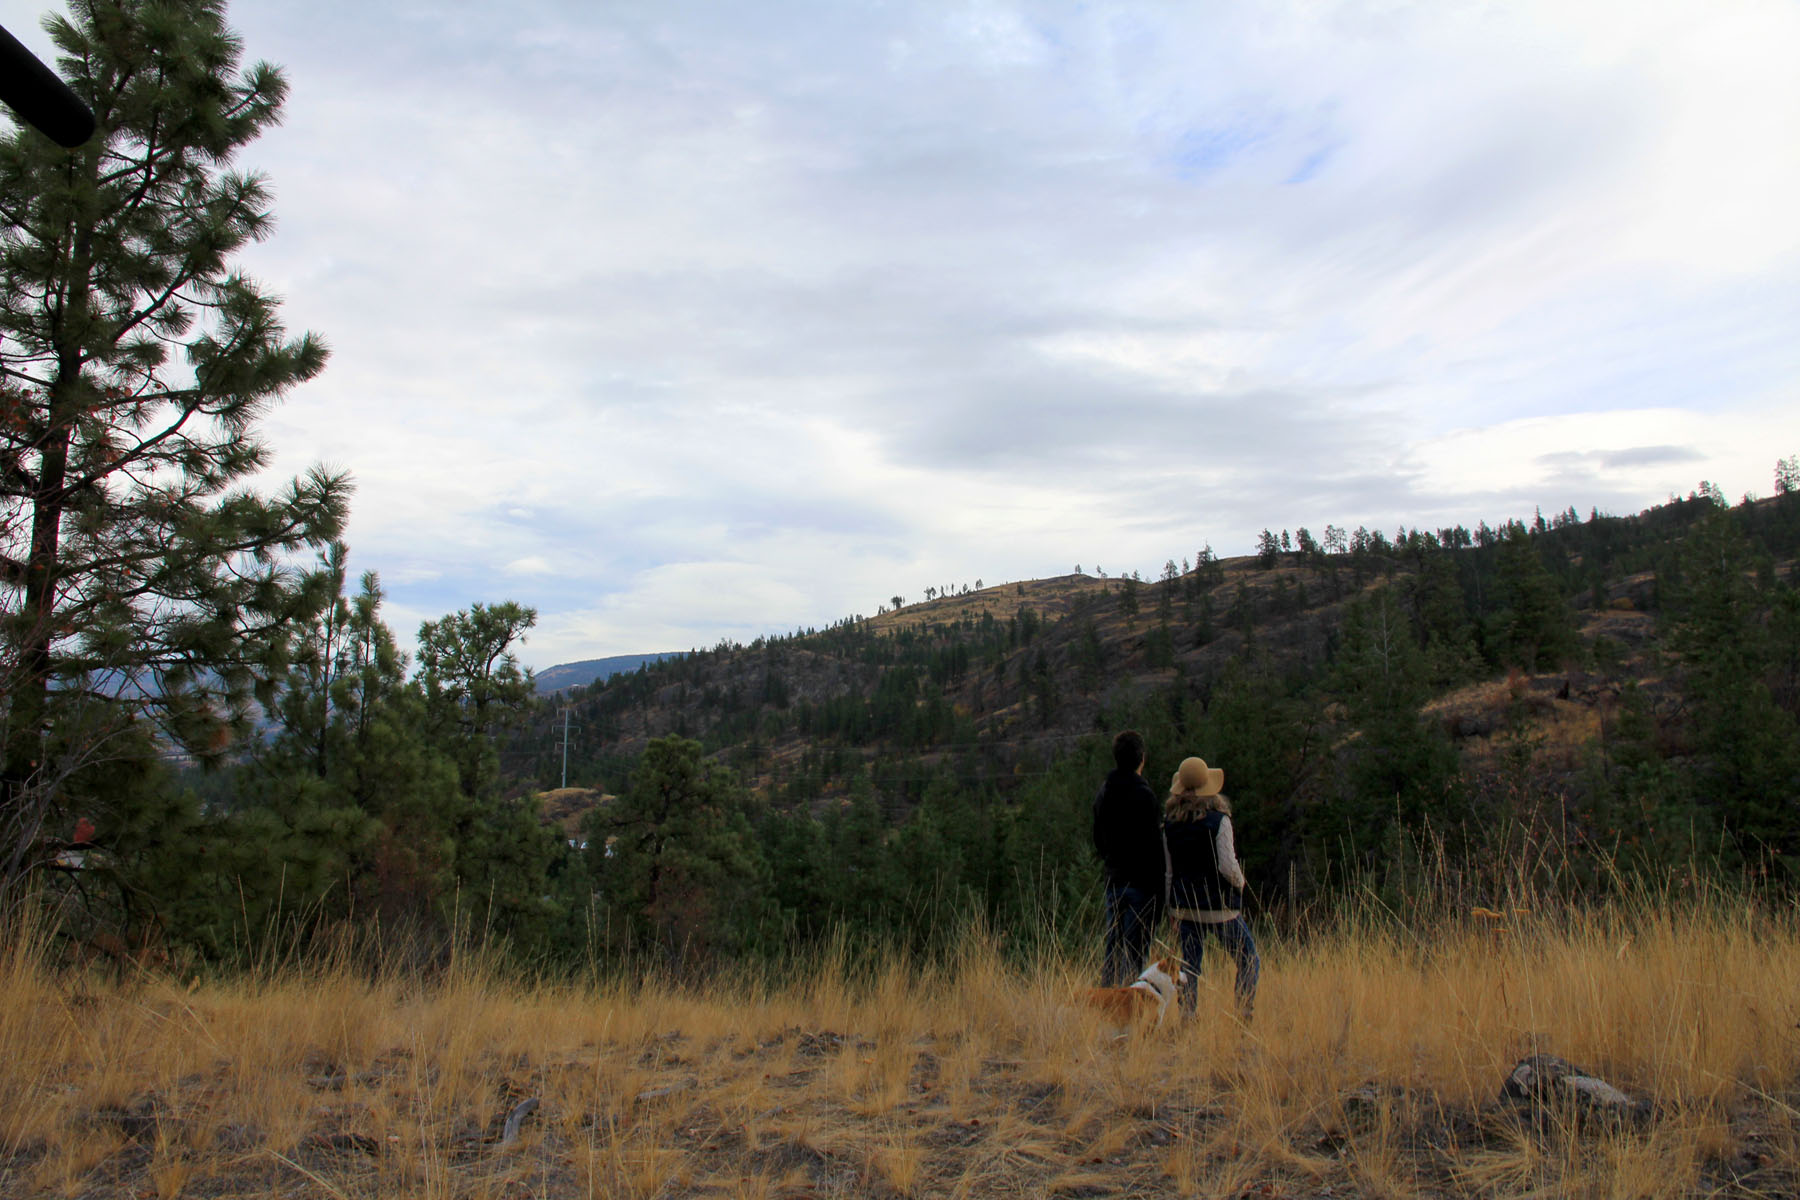 Couple hiking at the Bluffs at Skaha